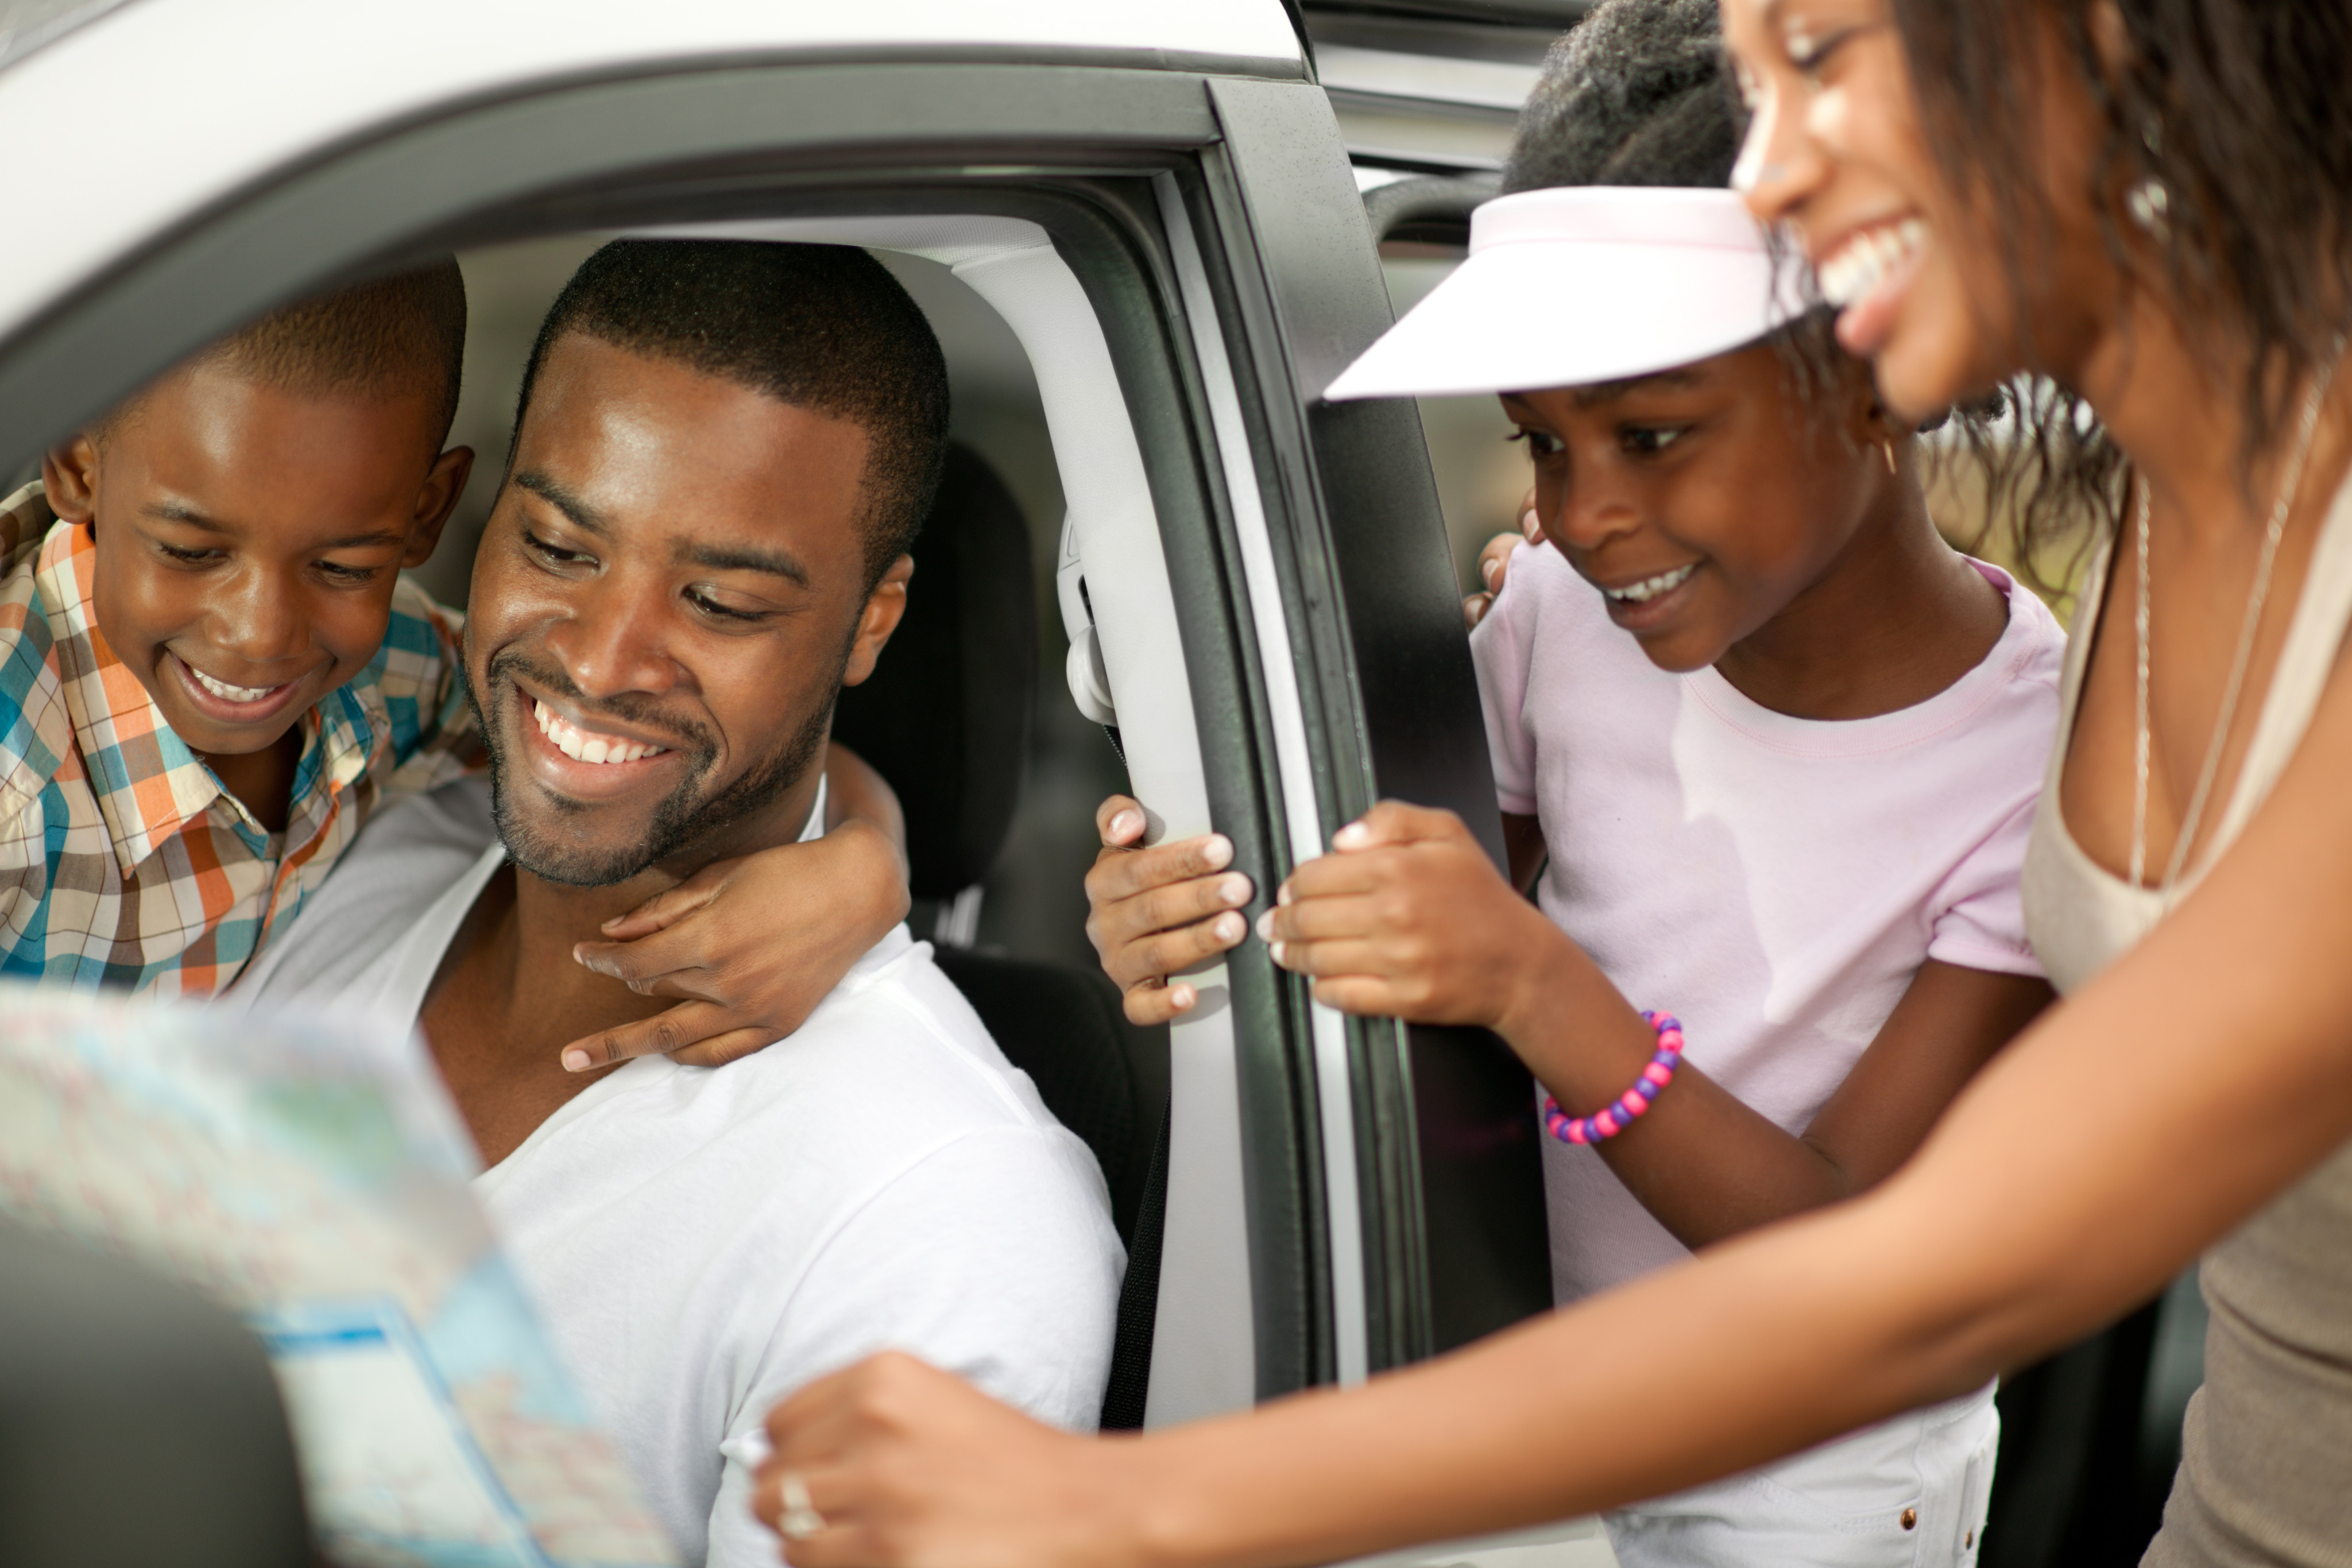 African American father smiles as he shows off his new SUV to his family